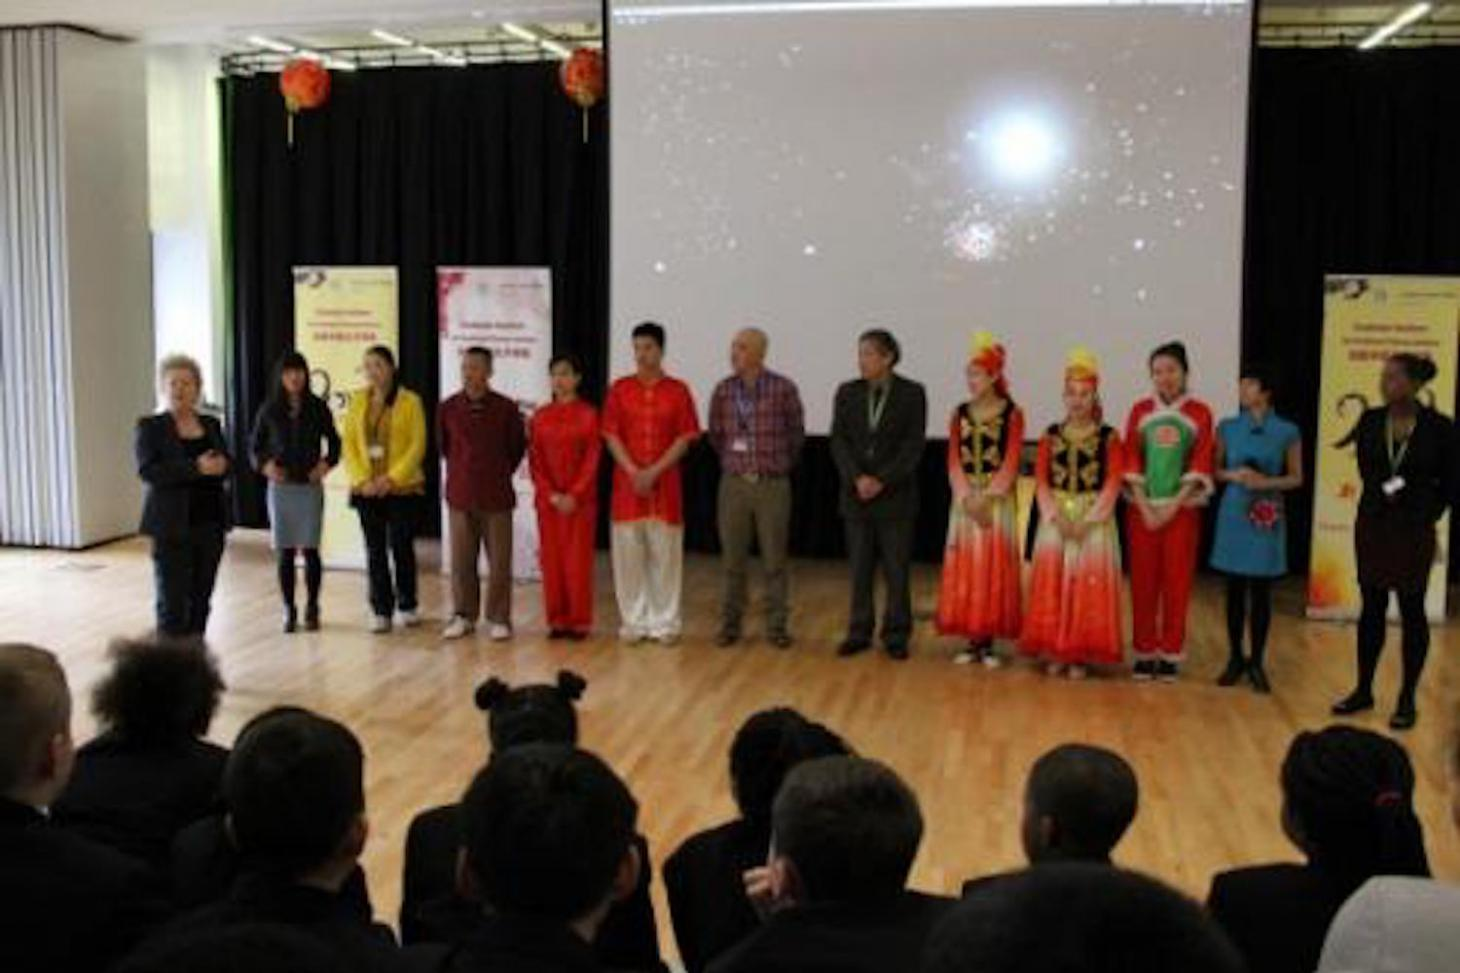 The Principal introducing the performers and honoured guests